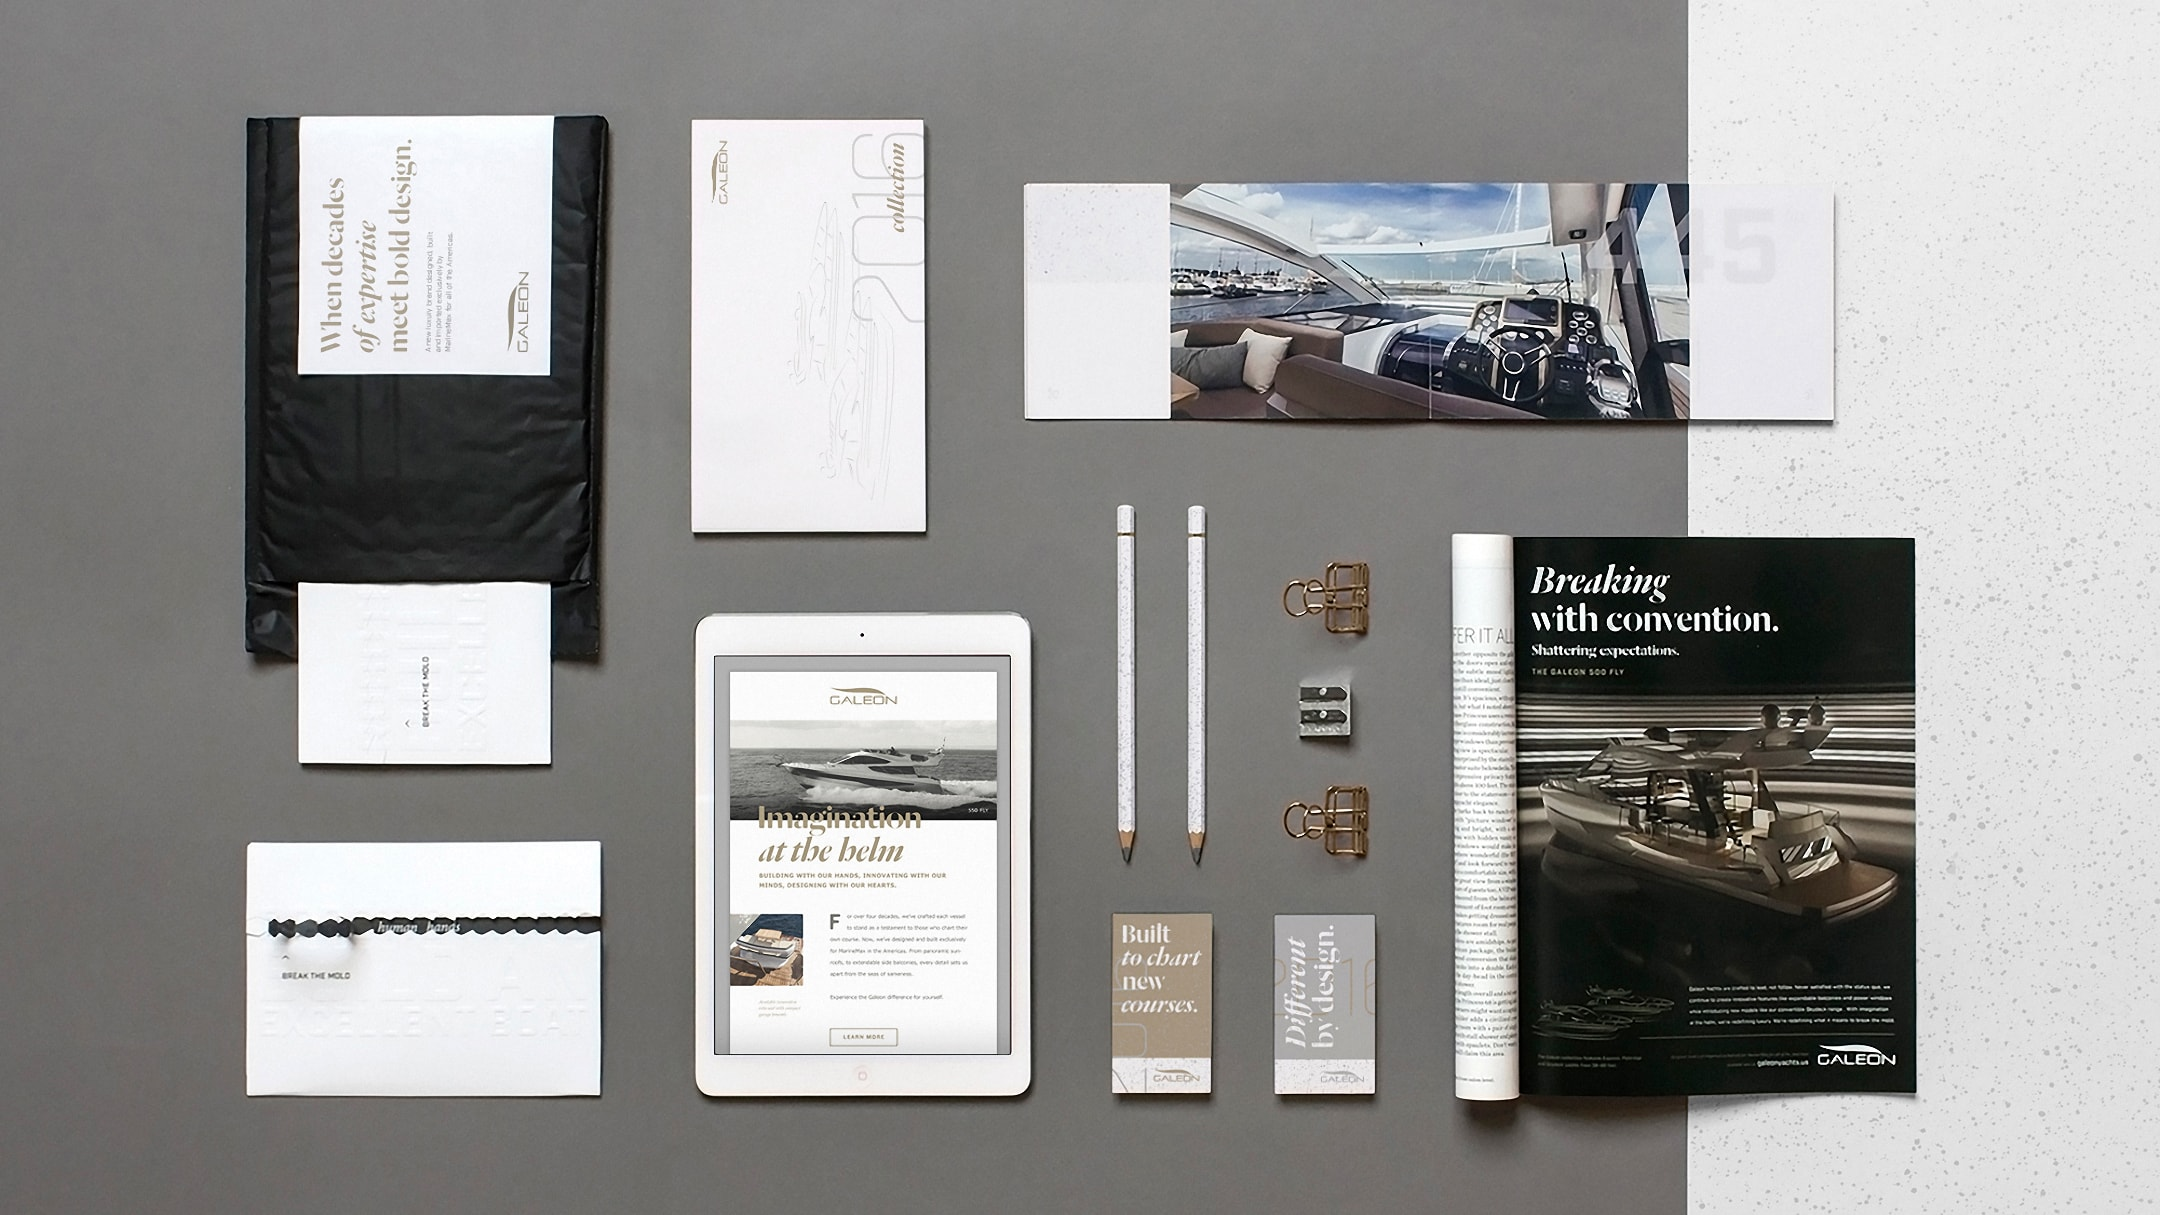 Galeon Yachts brand collateral